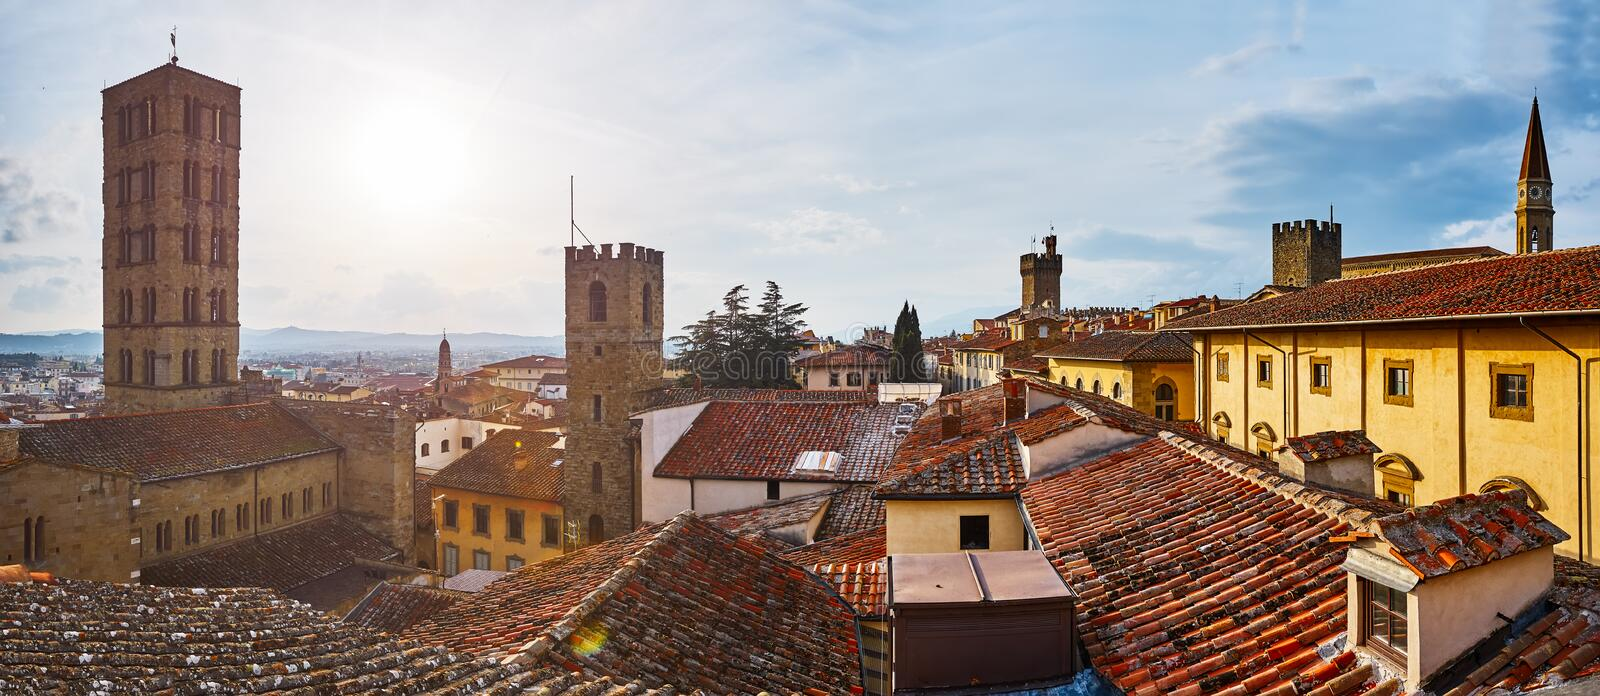 Roof of Arezzo royalty free stock photography